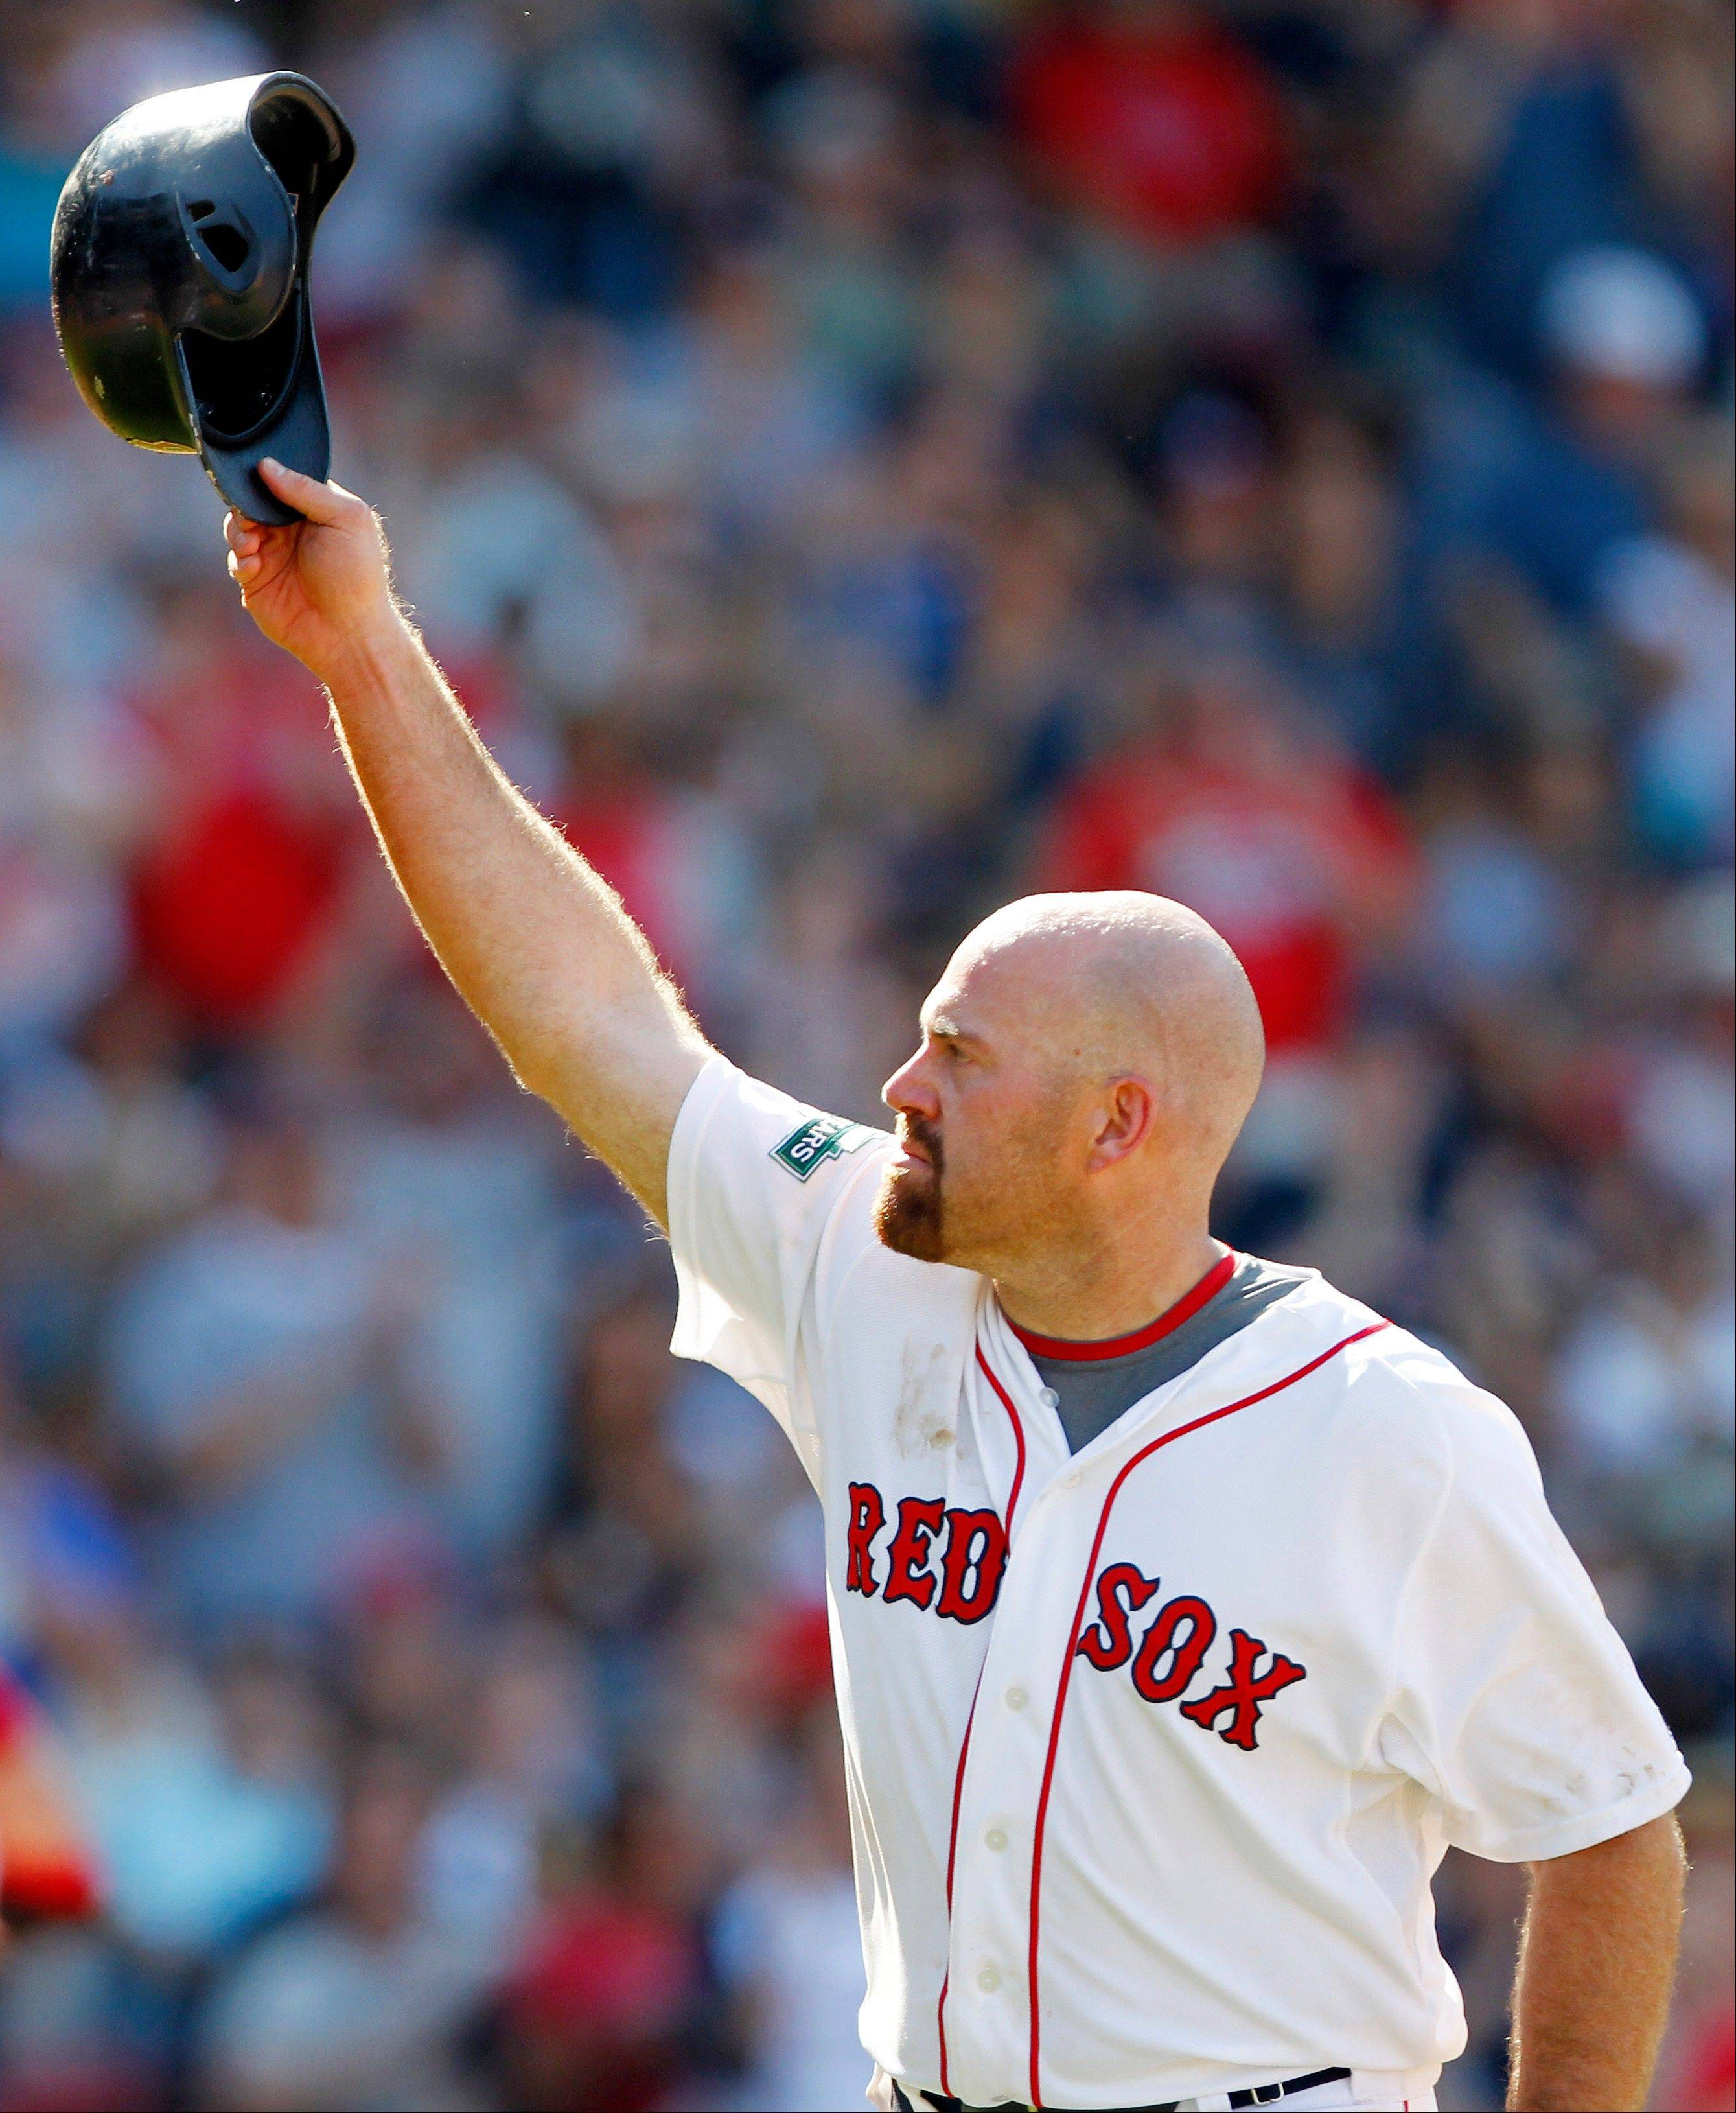 Kevin Youkilis tips his helmet to Red Sox fans as he comes off the field after hitting a triple and being replaced by a pinch runner in the seventh inning Sunday, his last day in Boston after being traded to the White Sox.